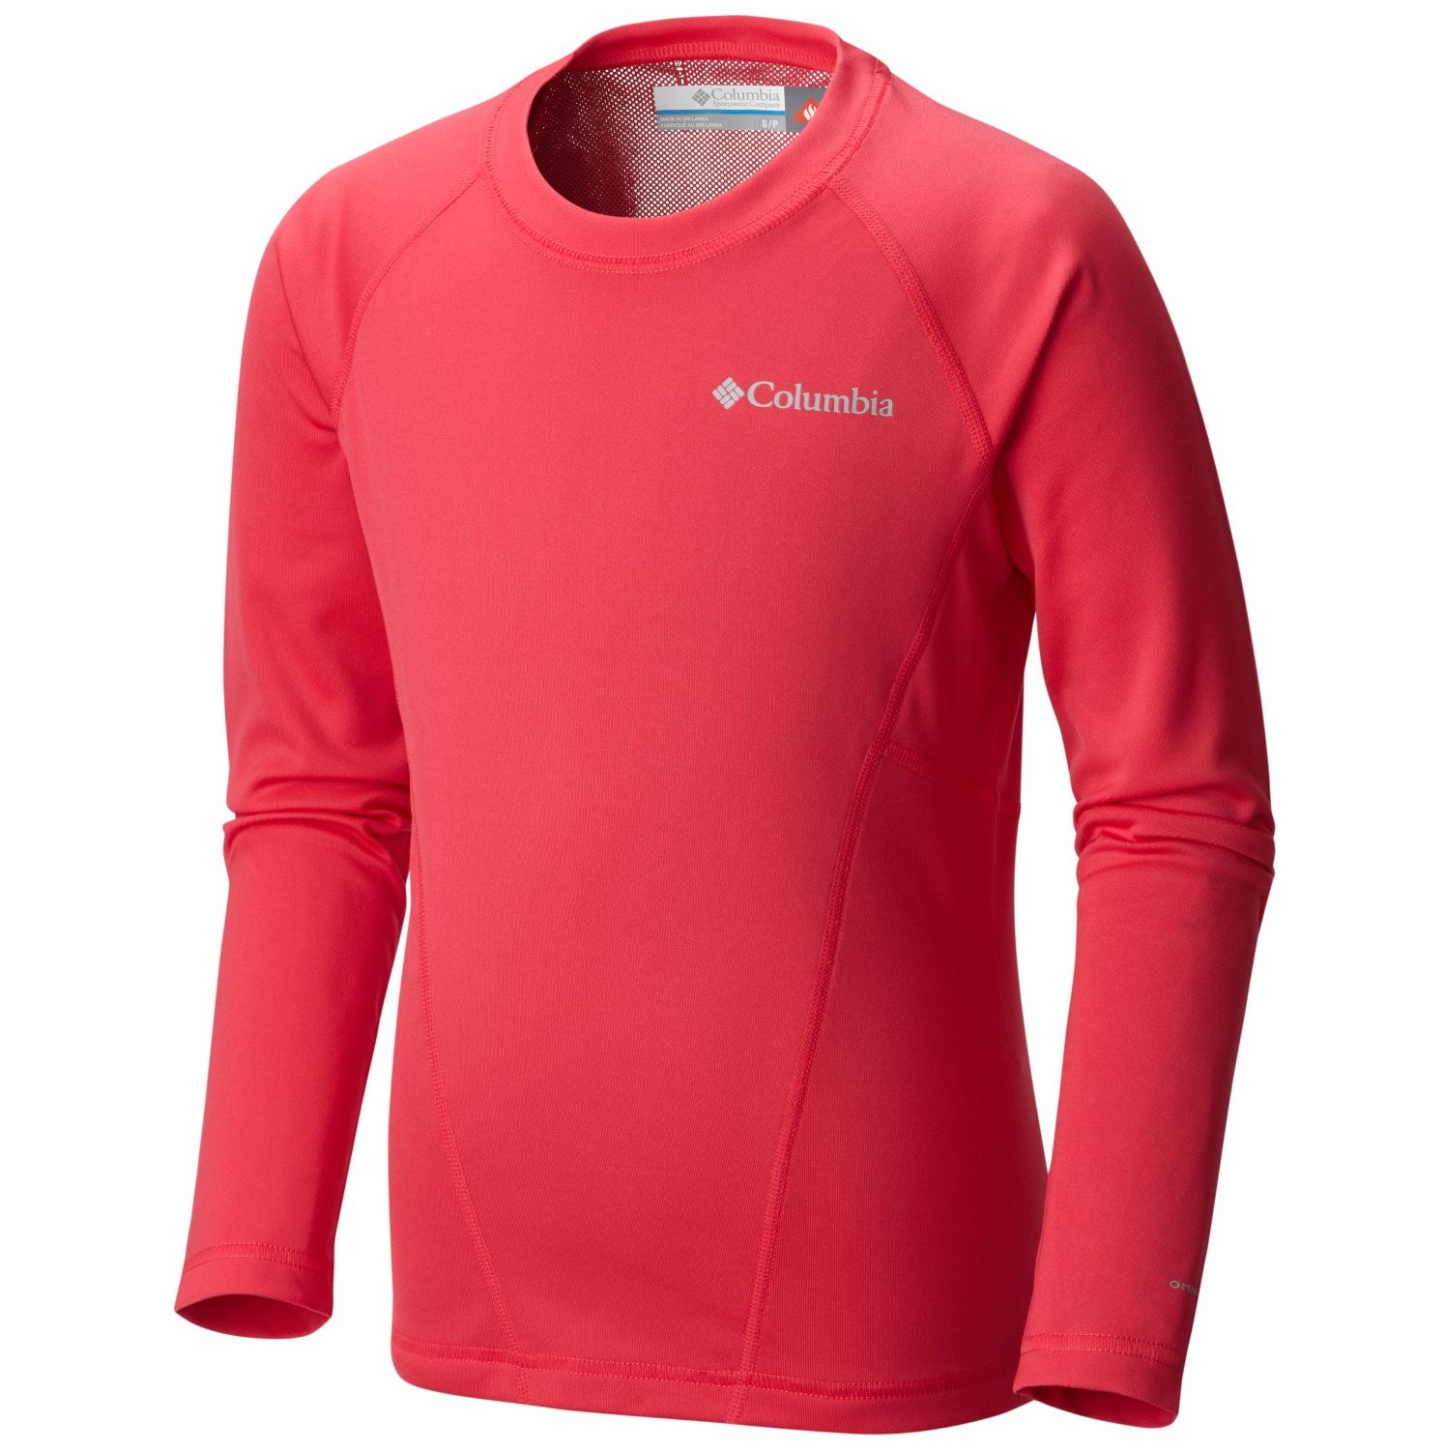 Columbia Boys' Midweight Crew 2 Top Punch Pink-30